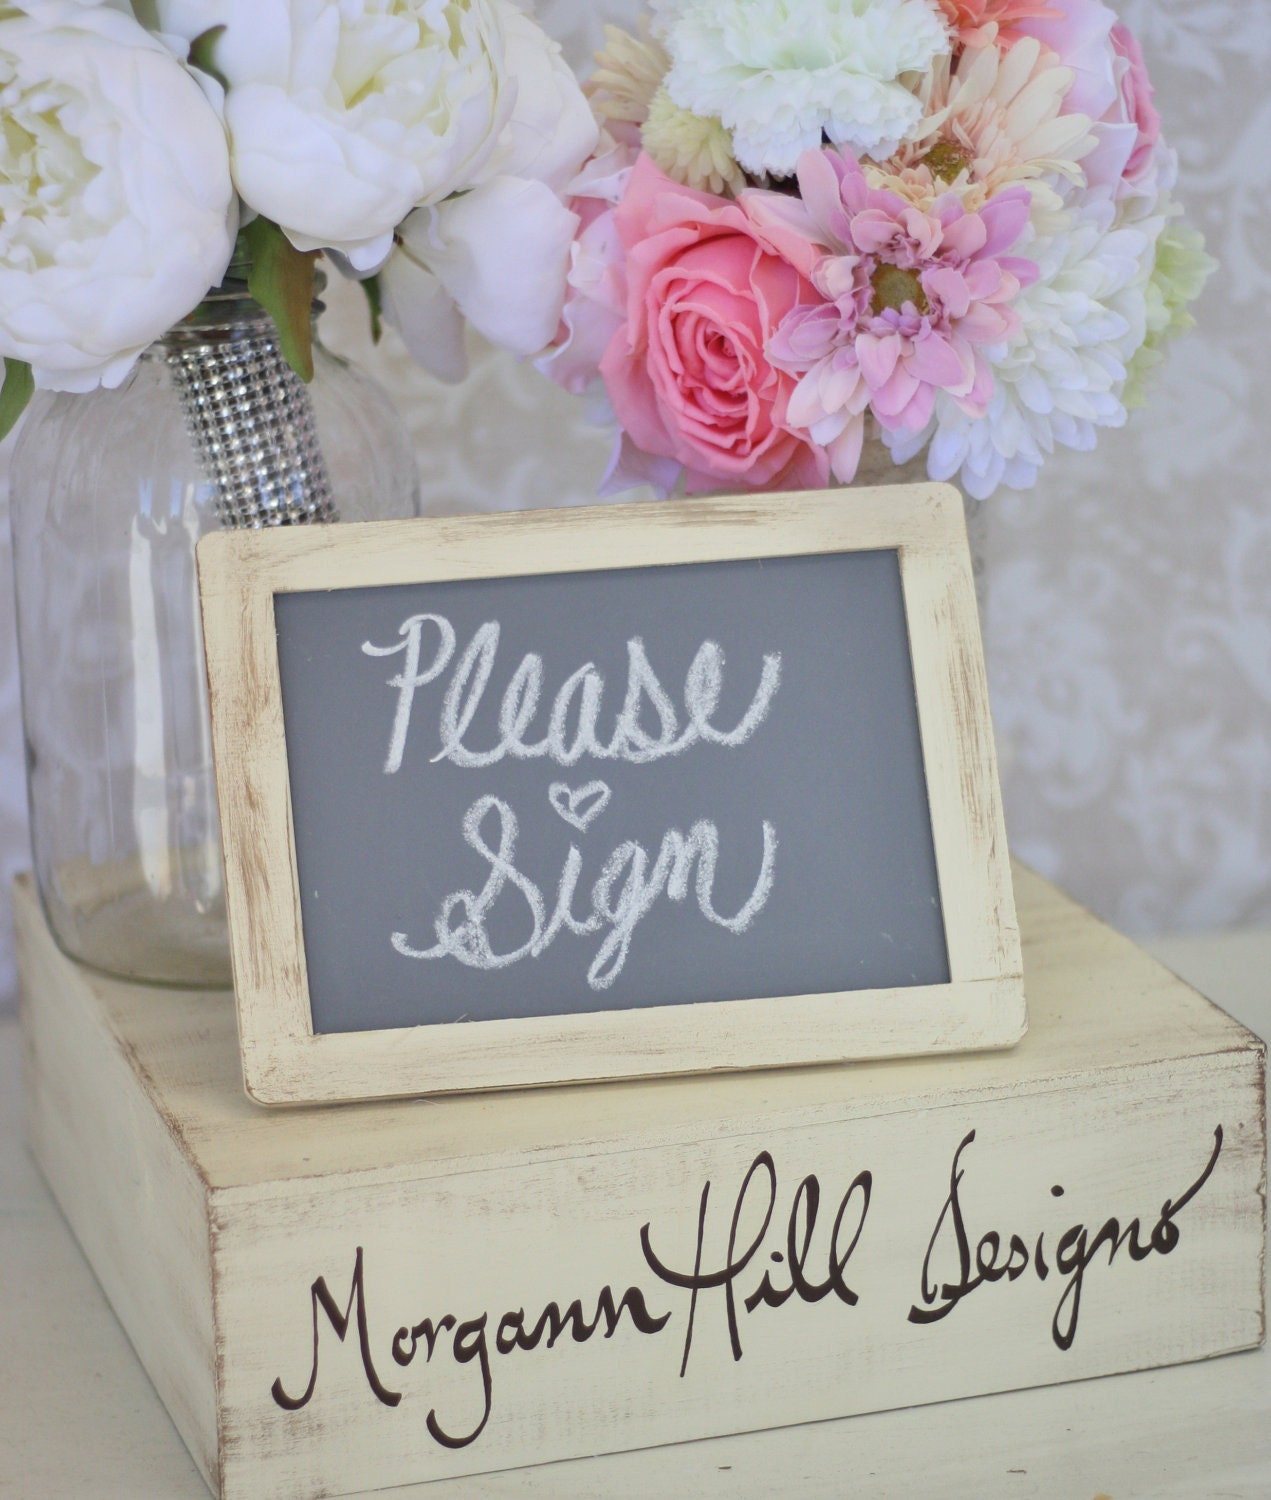 Rustic Wedding Chalkboard Signs Shabby Chic Decor (item P10007) - braggingbags